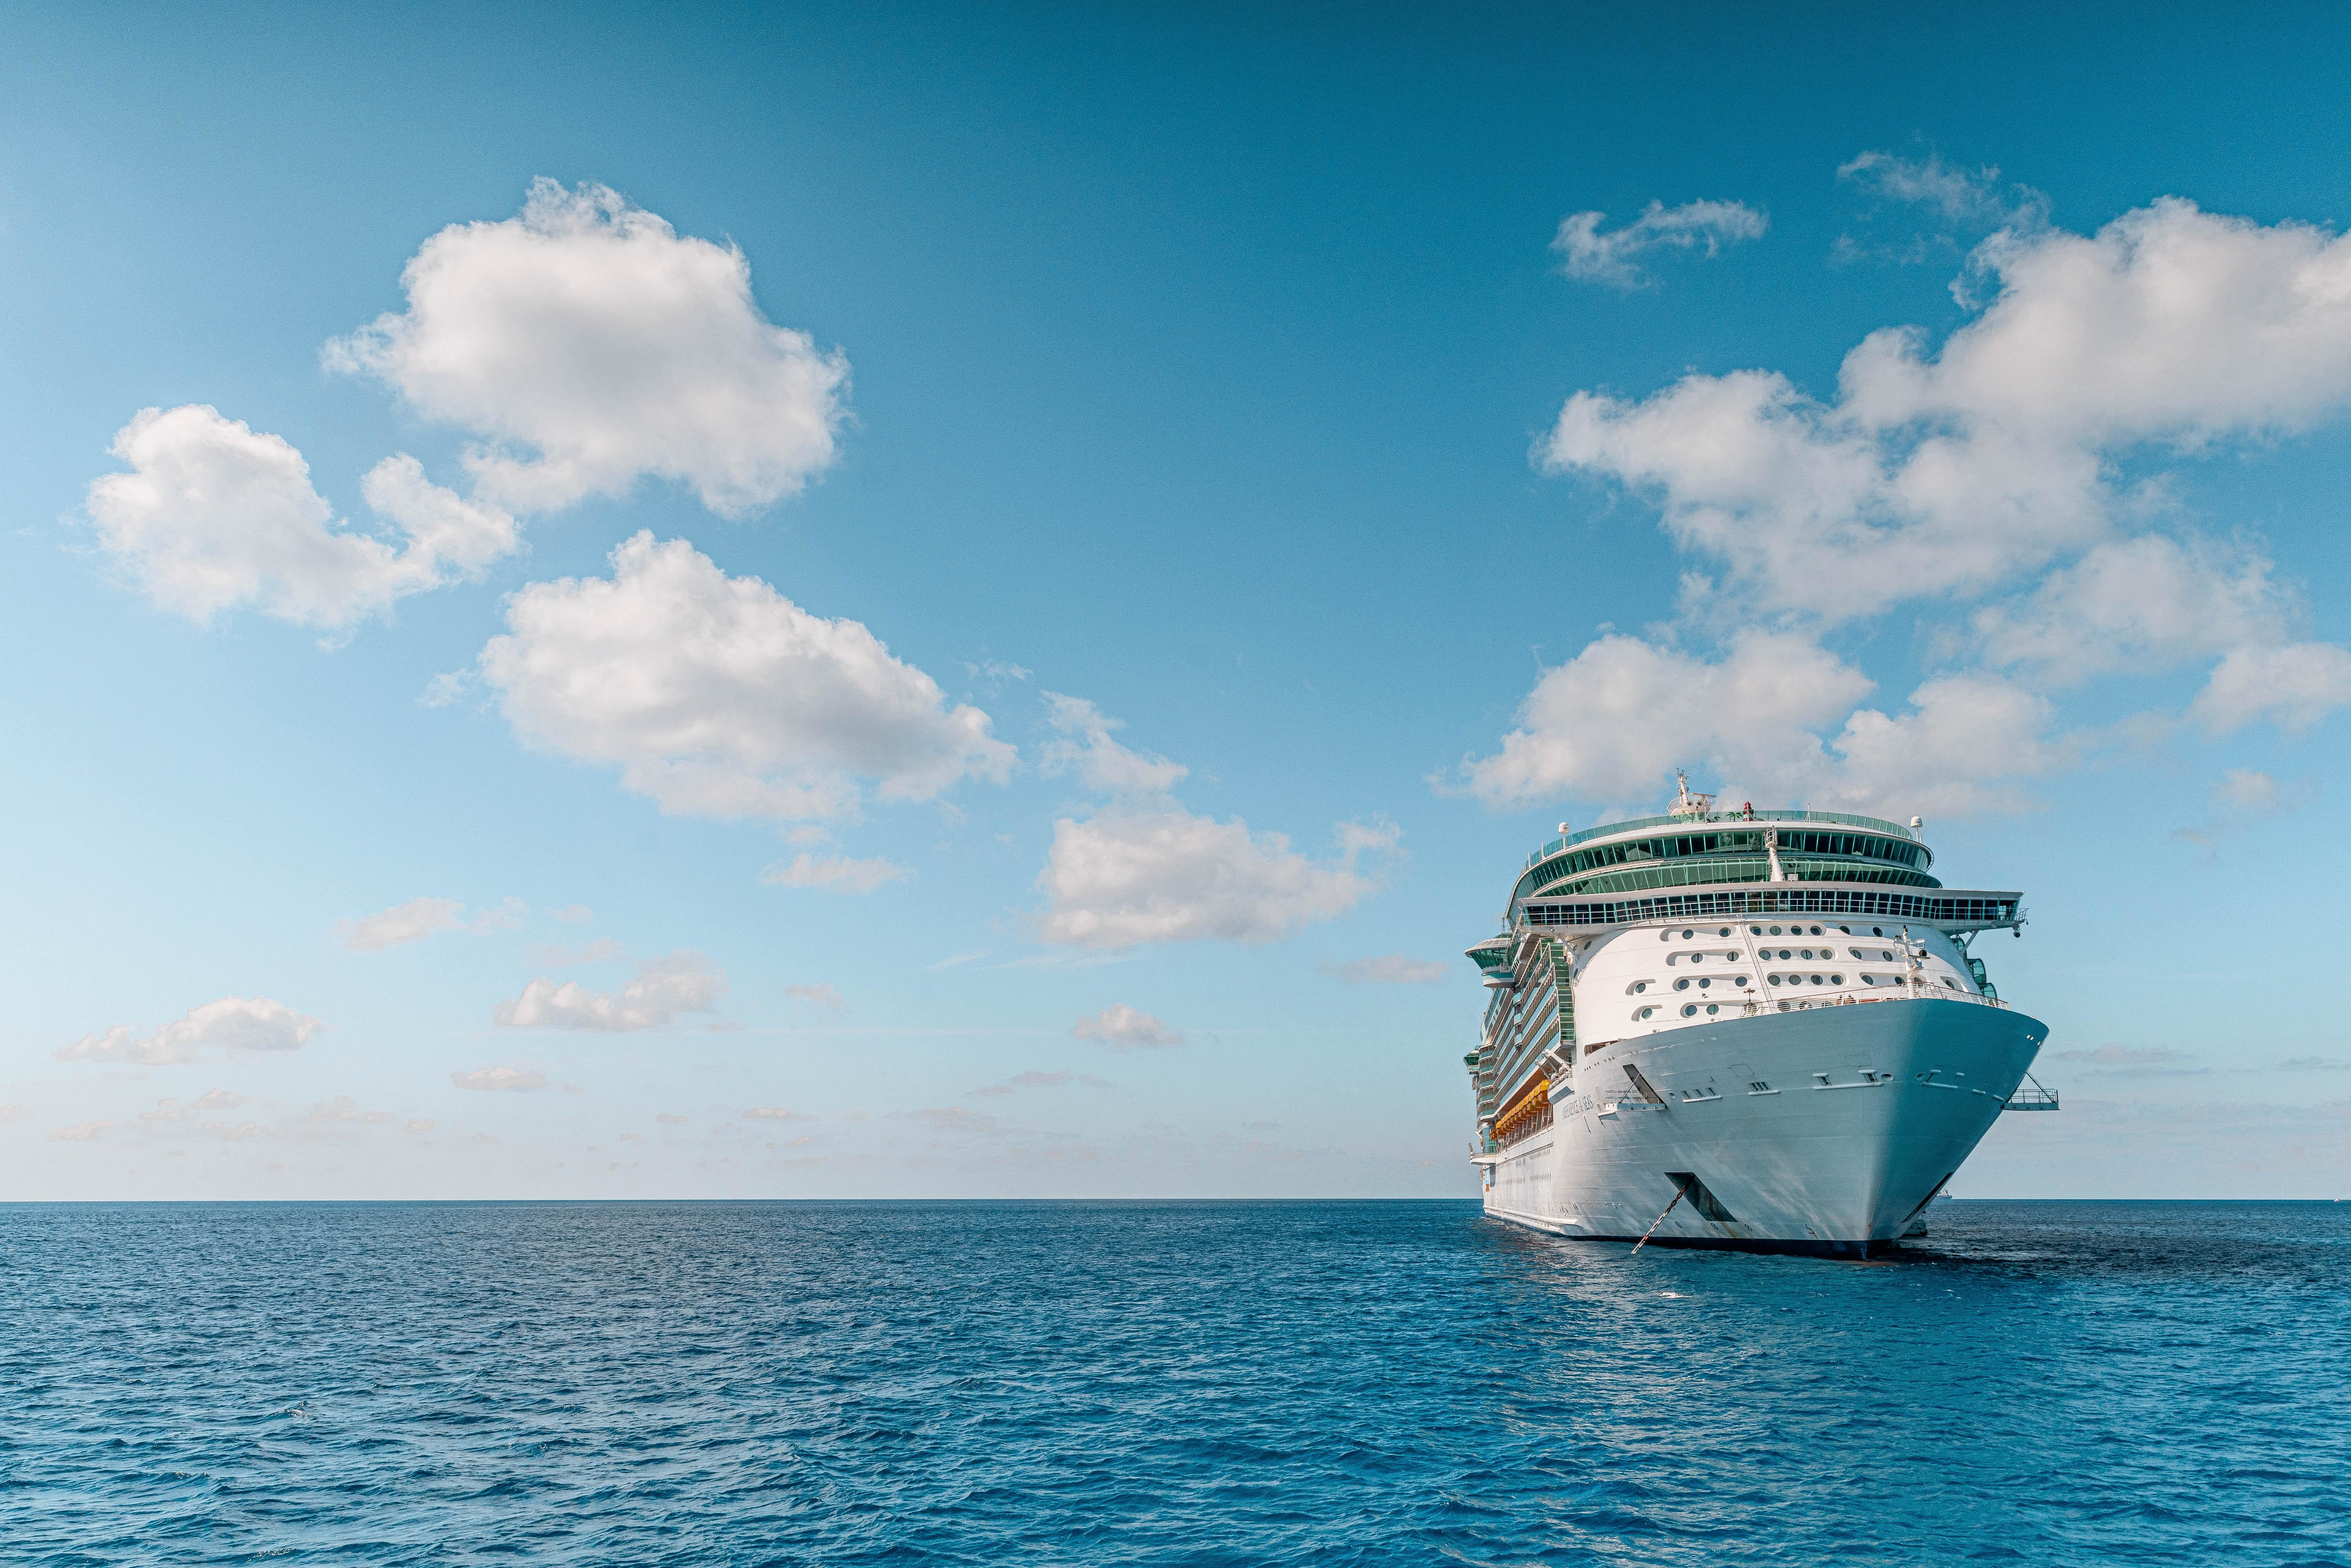 image of a cruise ship out at sea